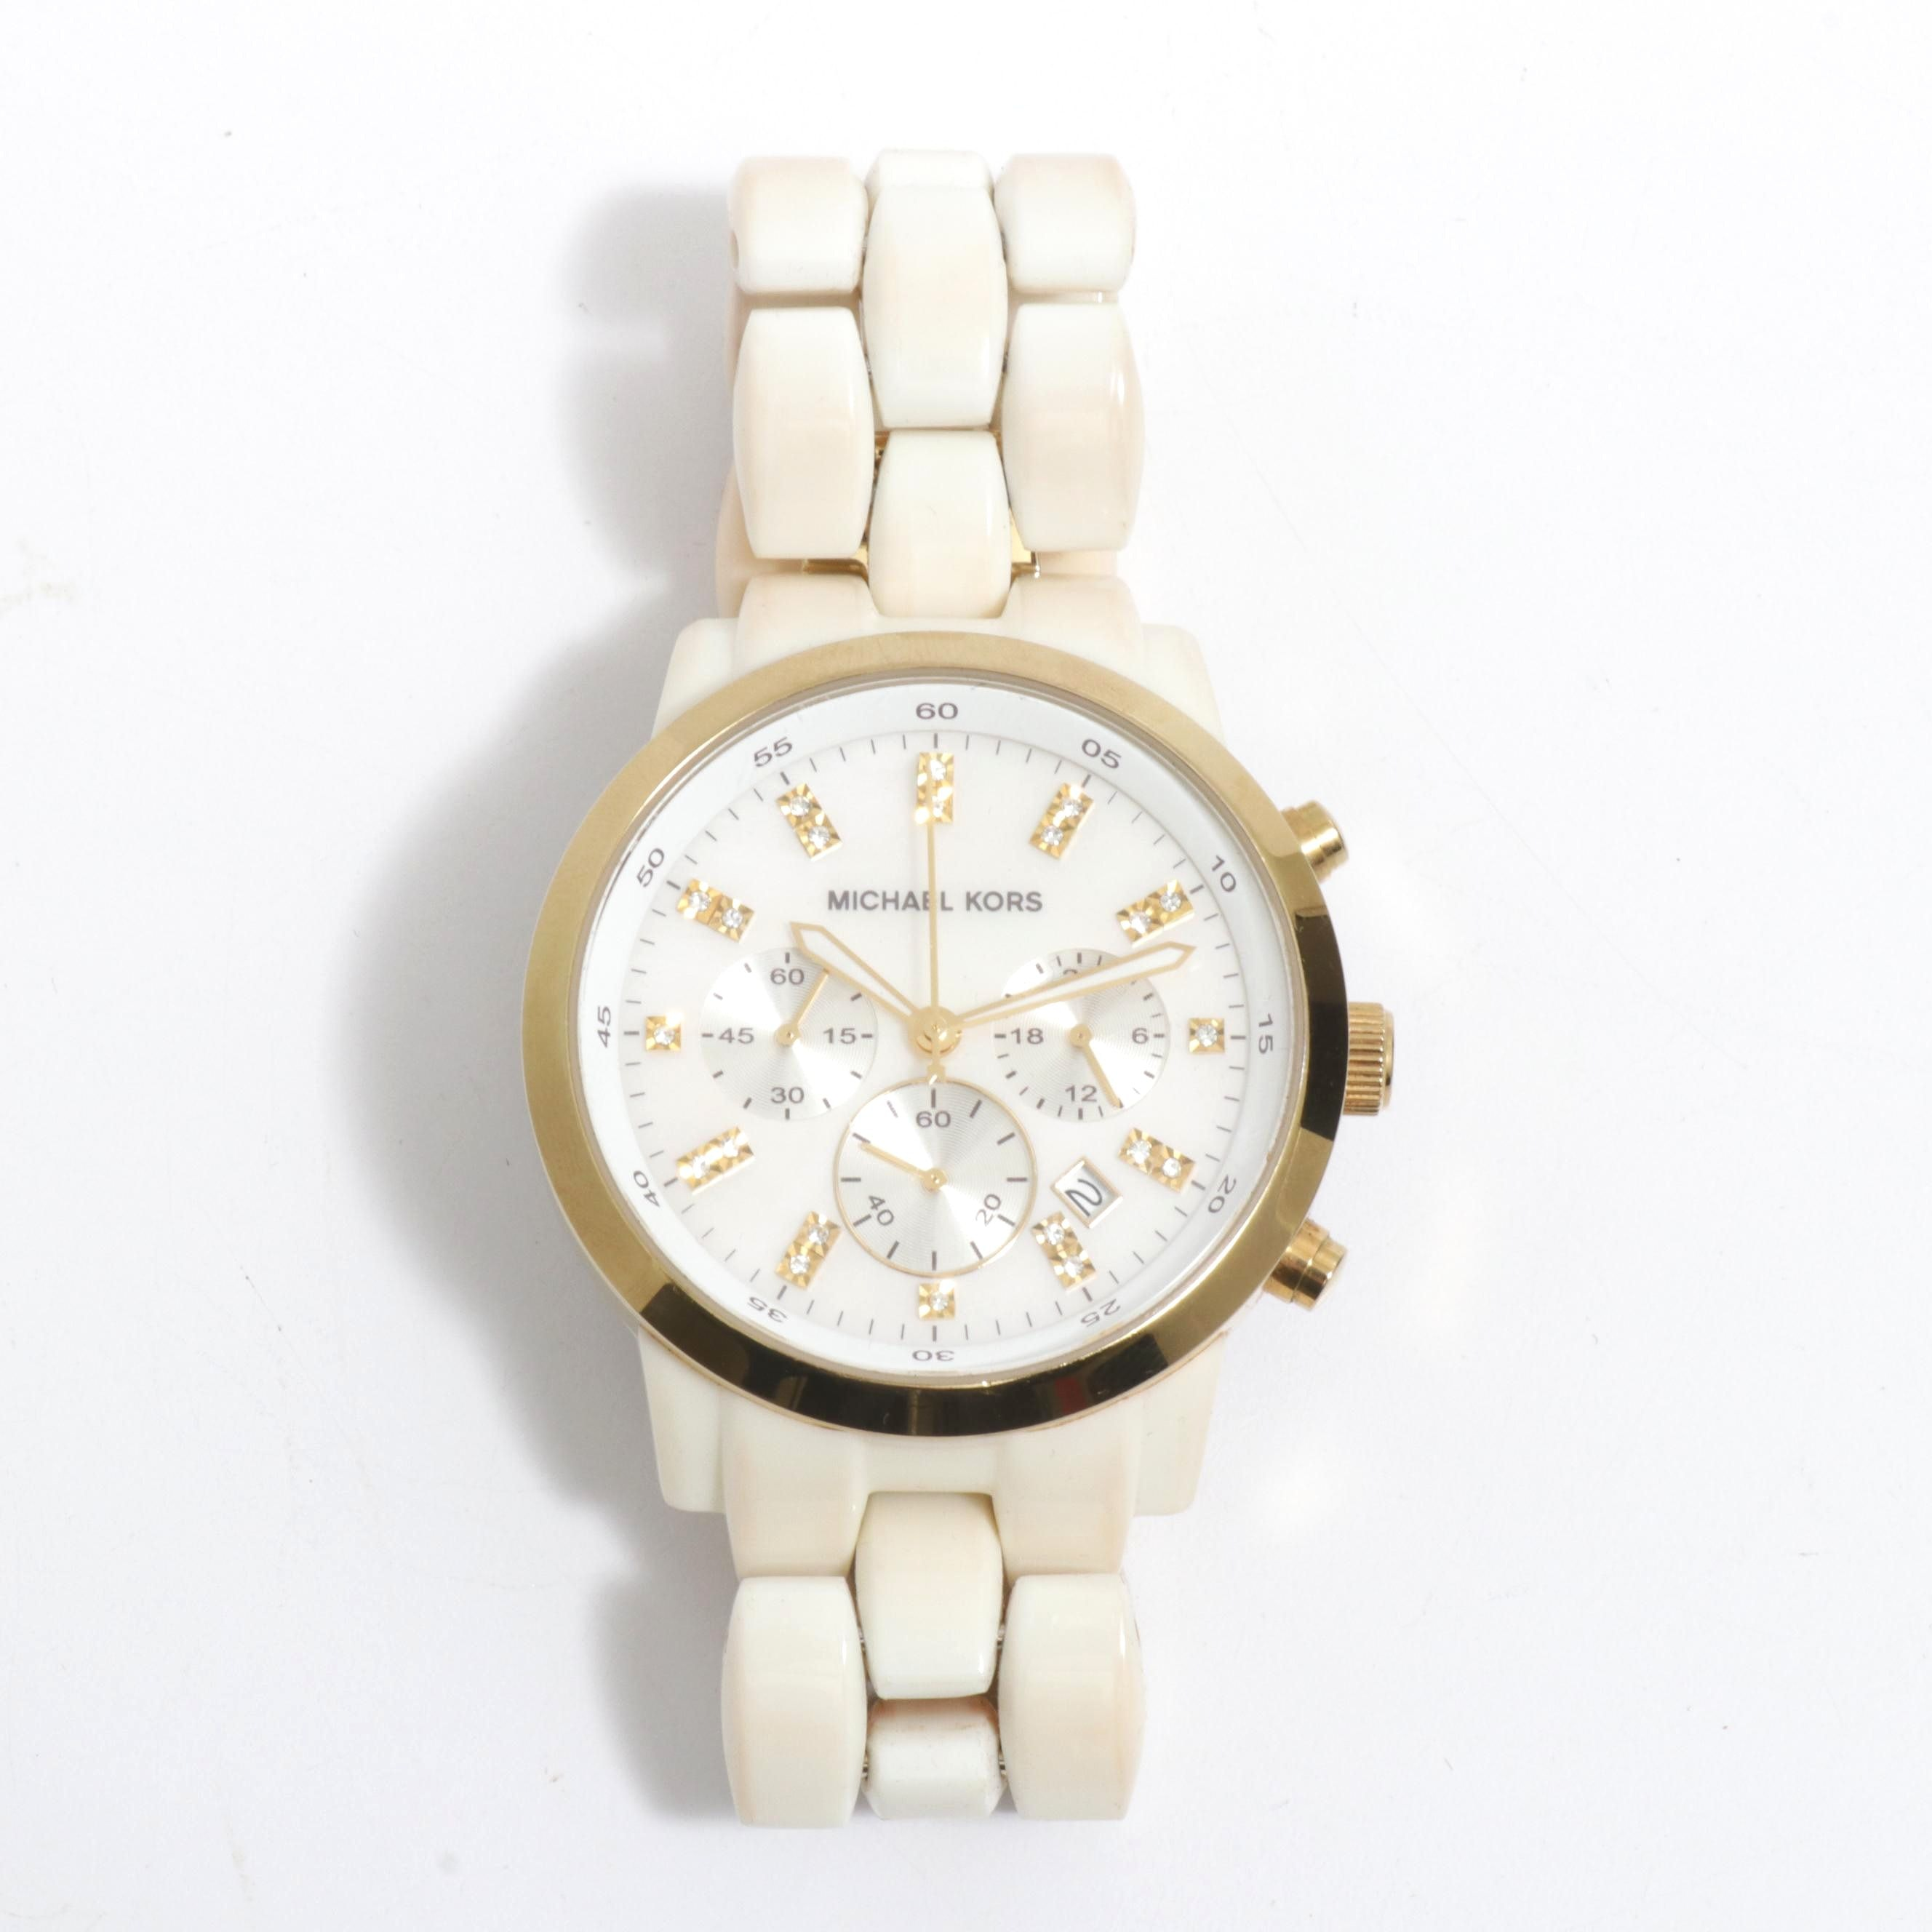 "Michael Kors ""Ritz"" Chronograph Wristwatch"